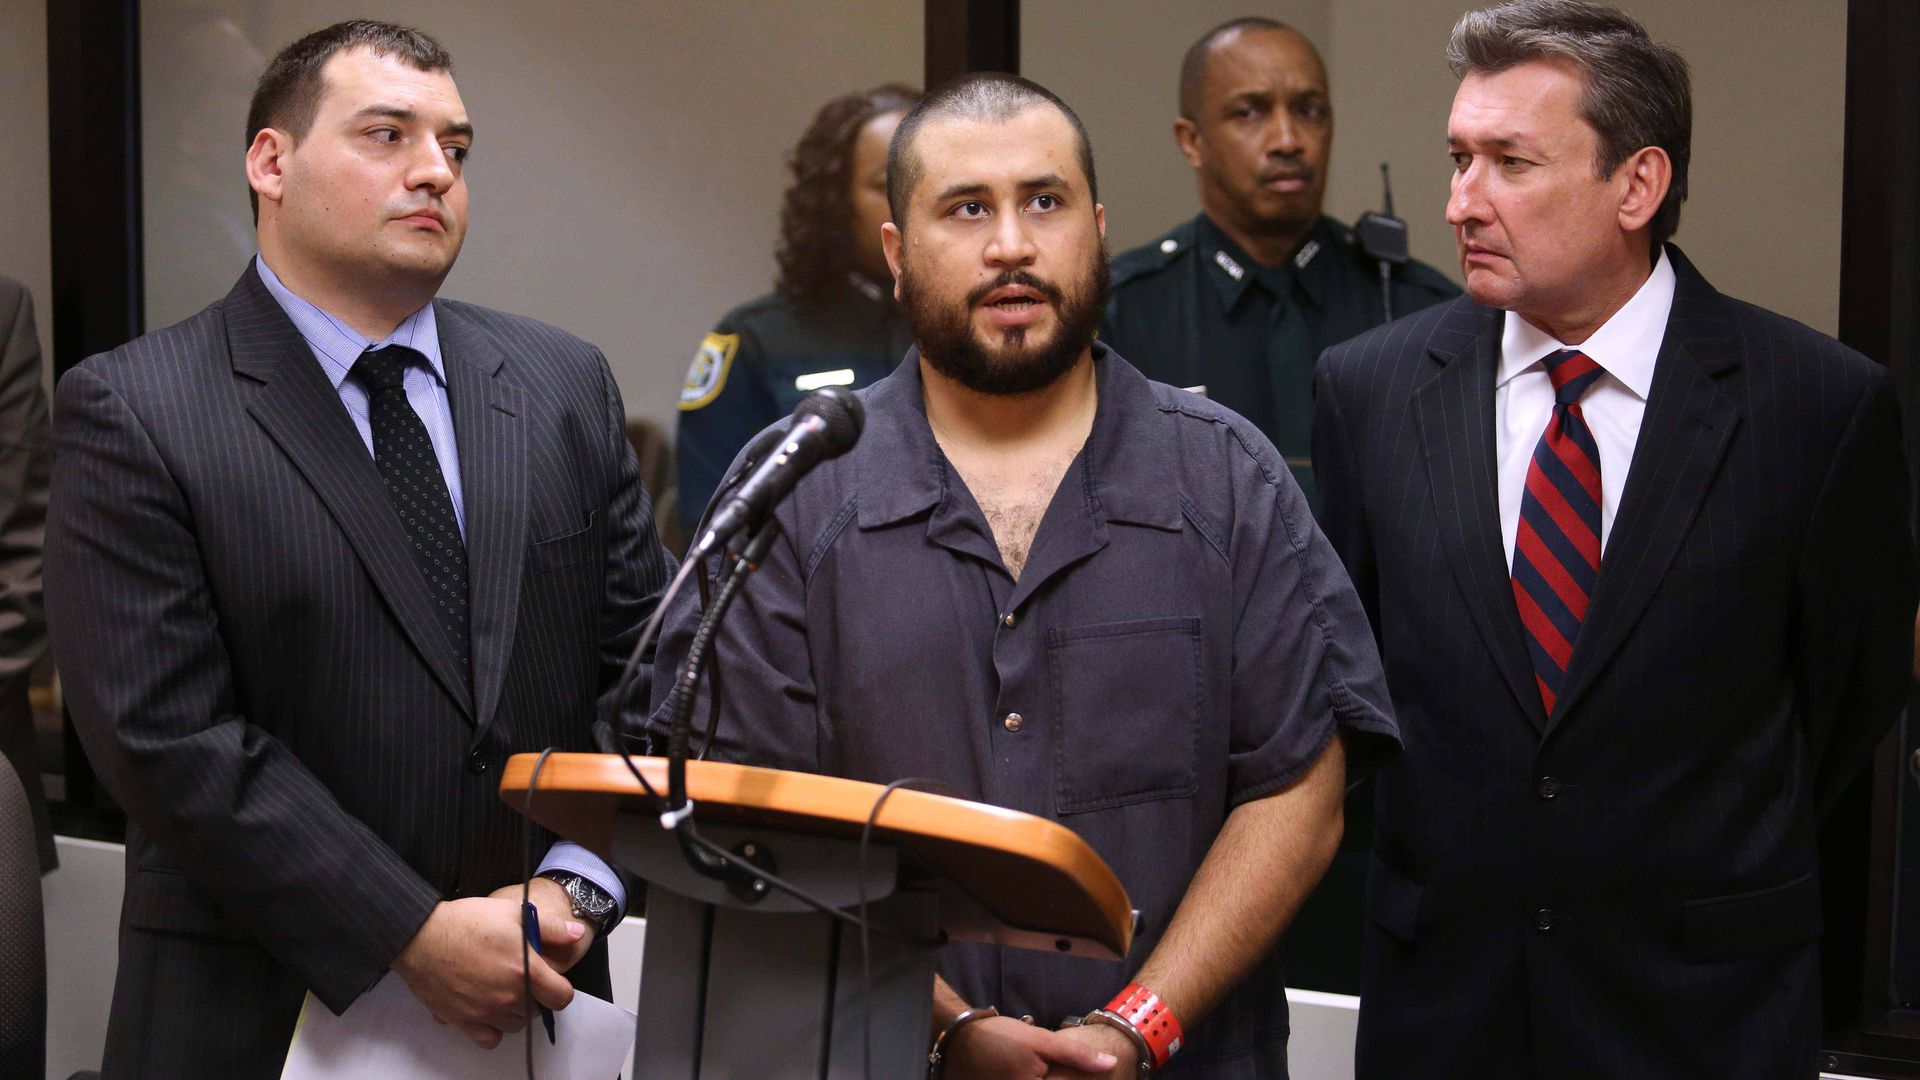 George Zimmerman answers questions from a Seminole circuit judge during a hearing on charges including aggravated assault stemming from a fight with his girlfriend November 19, 2013